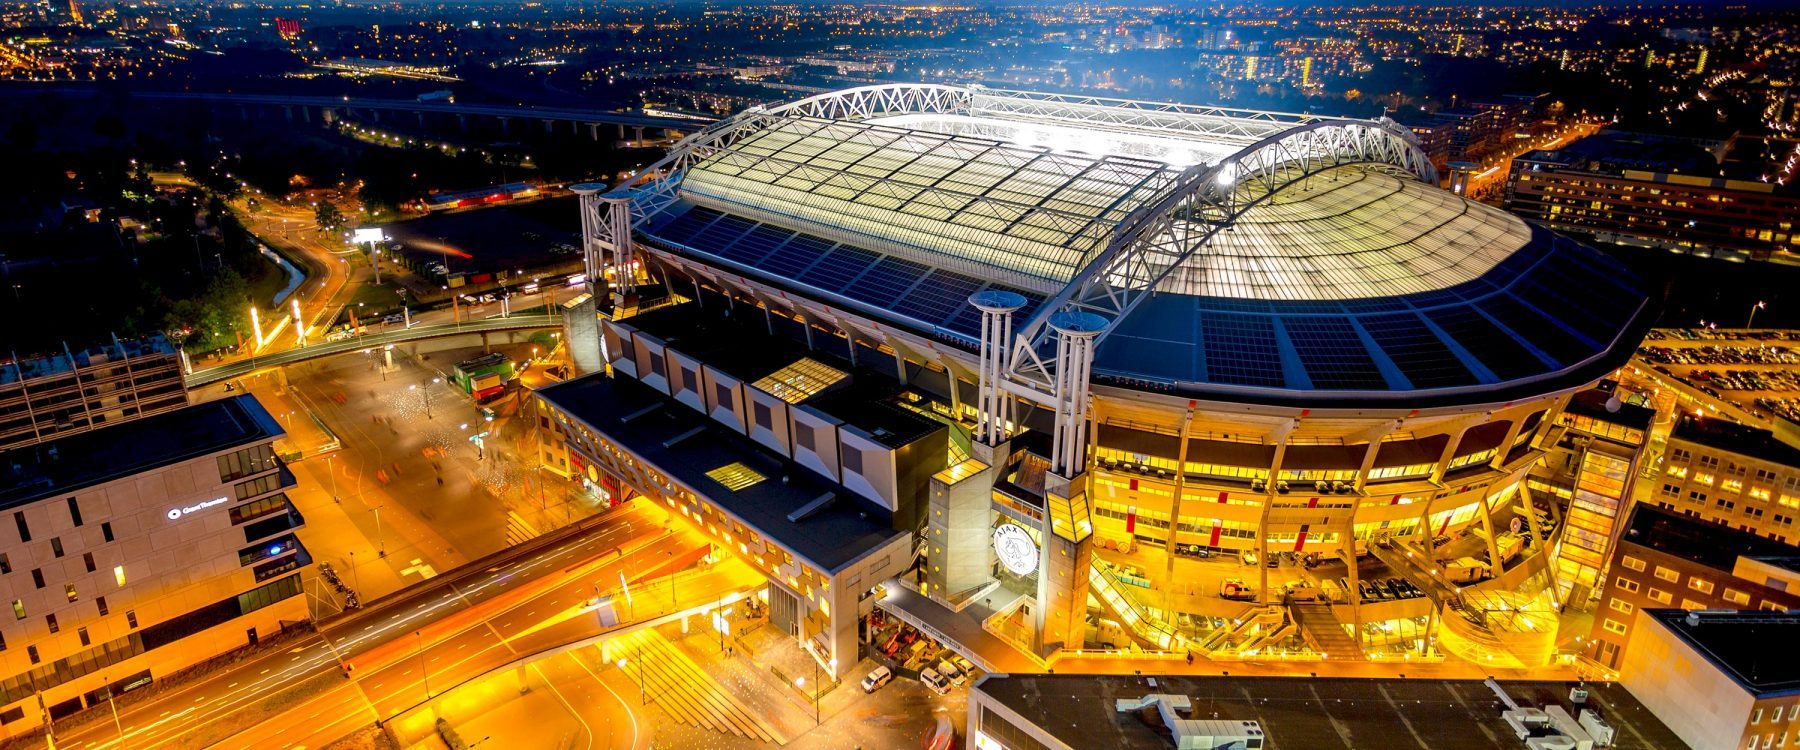 Nissan Electrify The World - Amsterdam ArenA